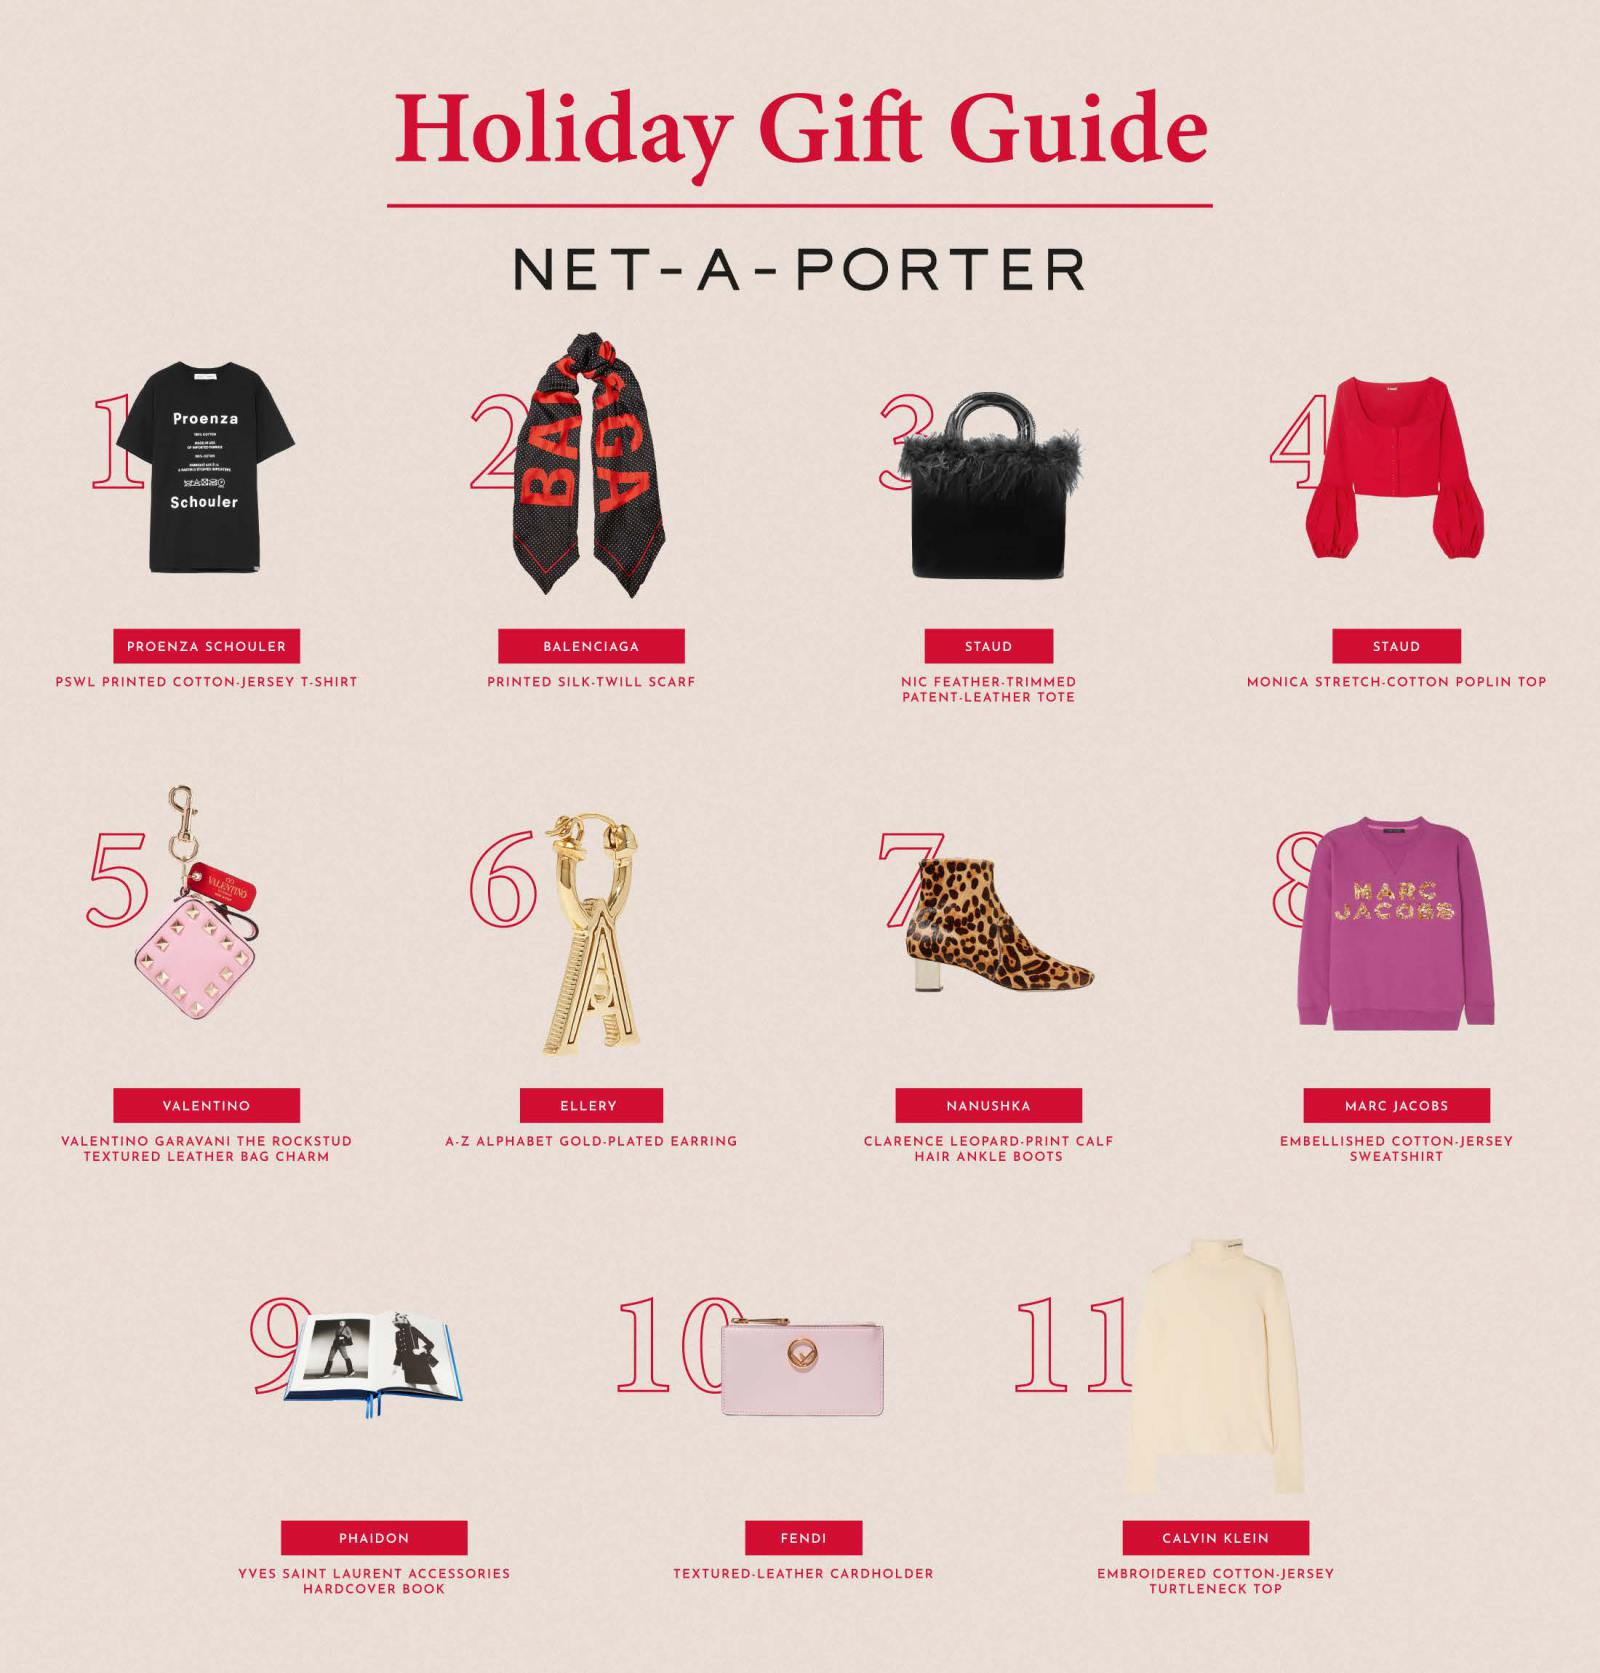 cb70f477d0f4a To make your holiday shopping easier, I listed some of my favorite picks  from the NET-A-PORTER sale below. Each piece listed is under  300!